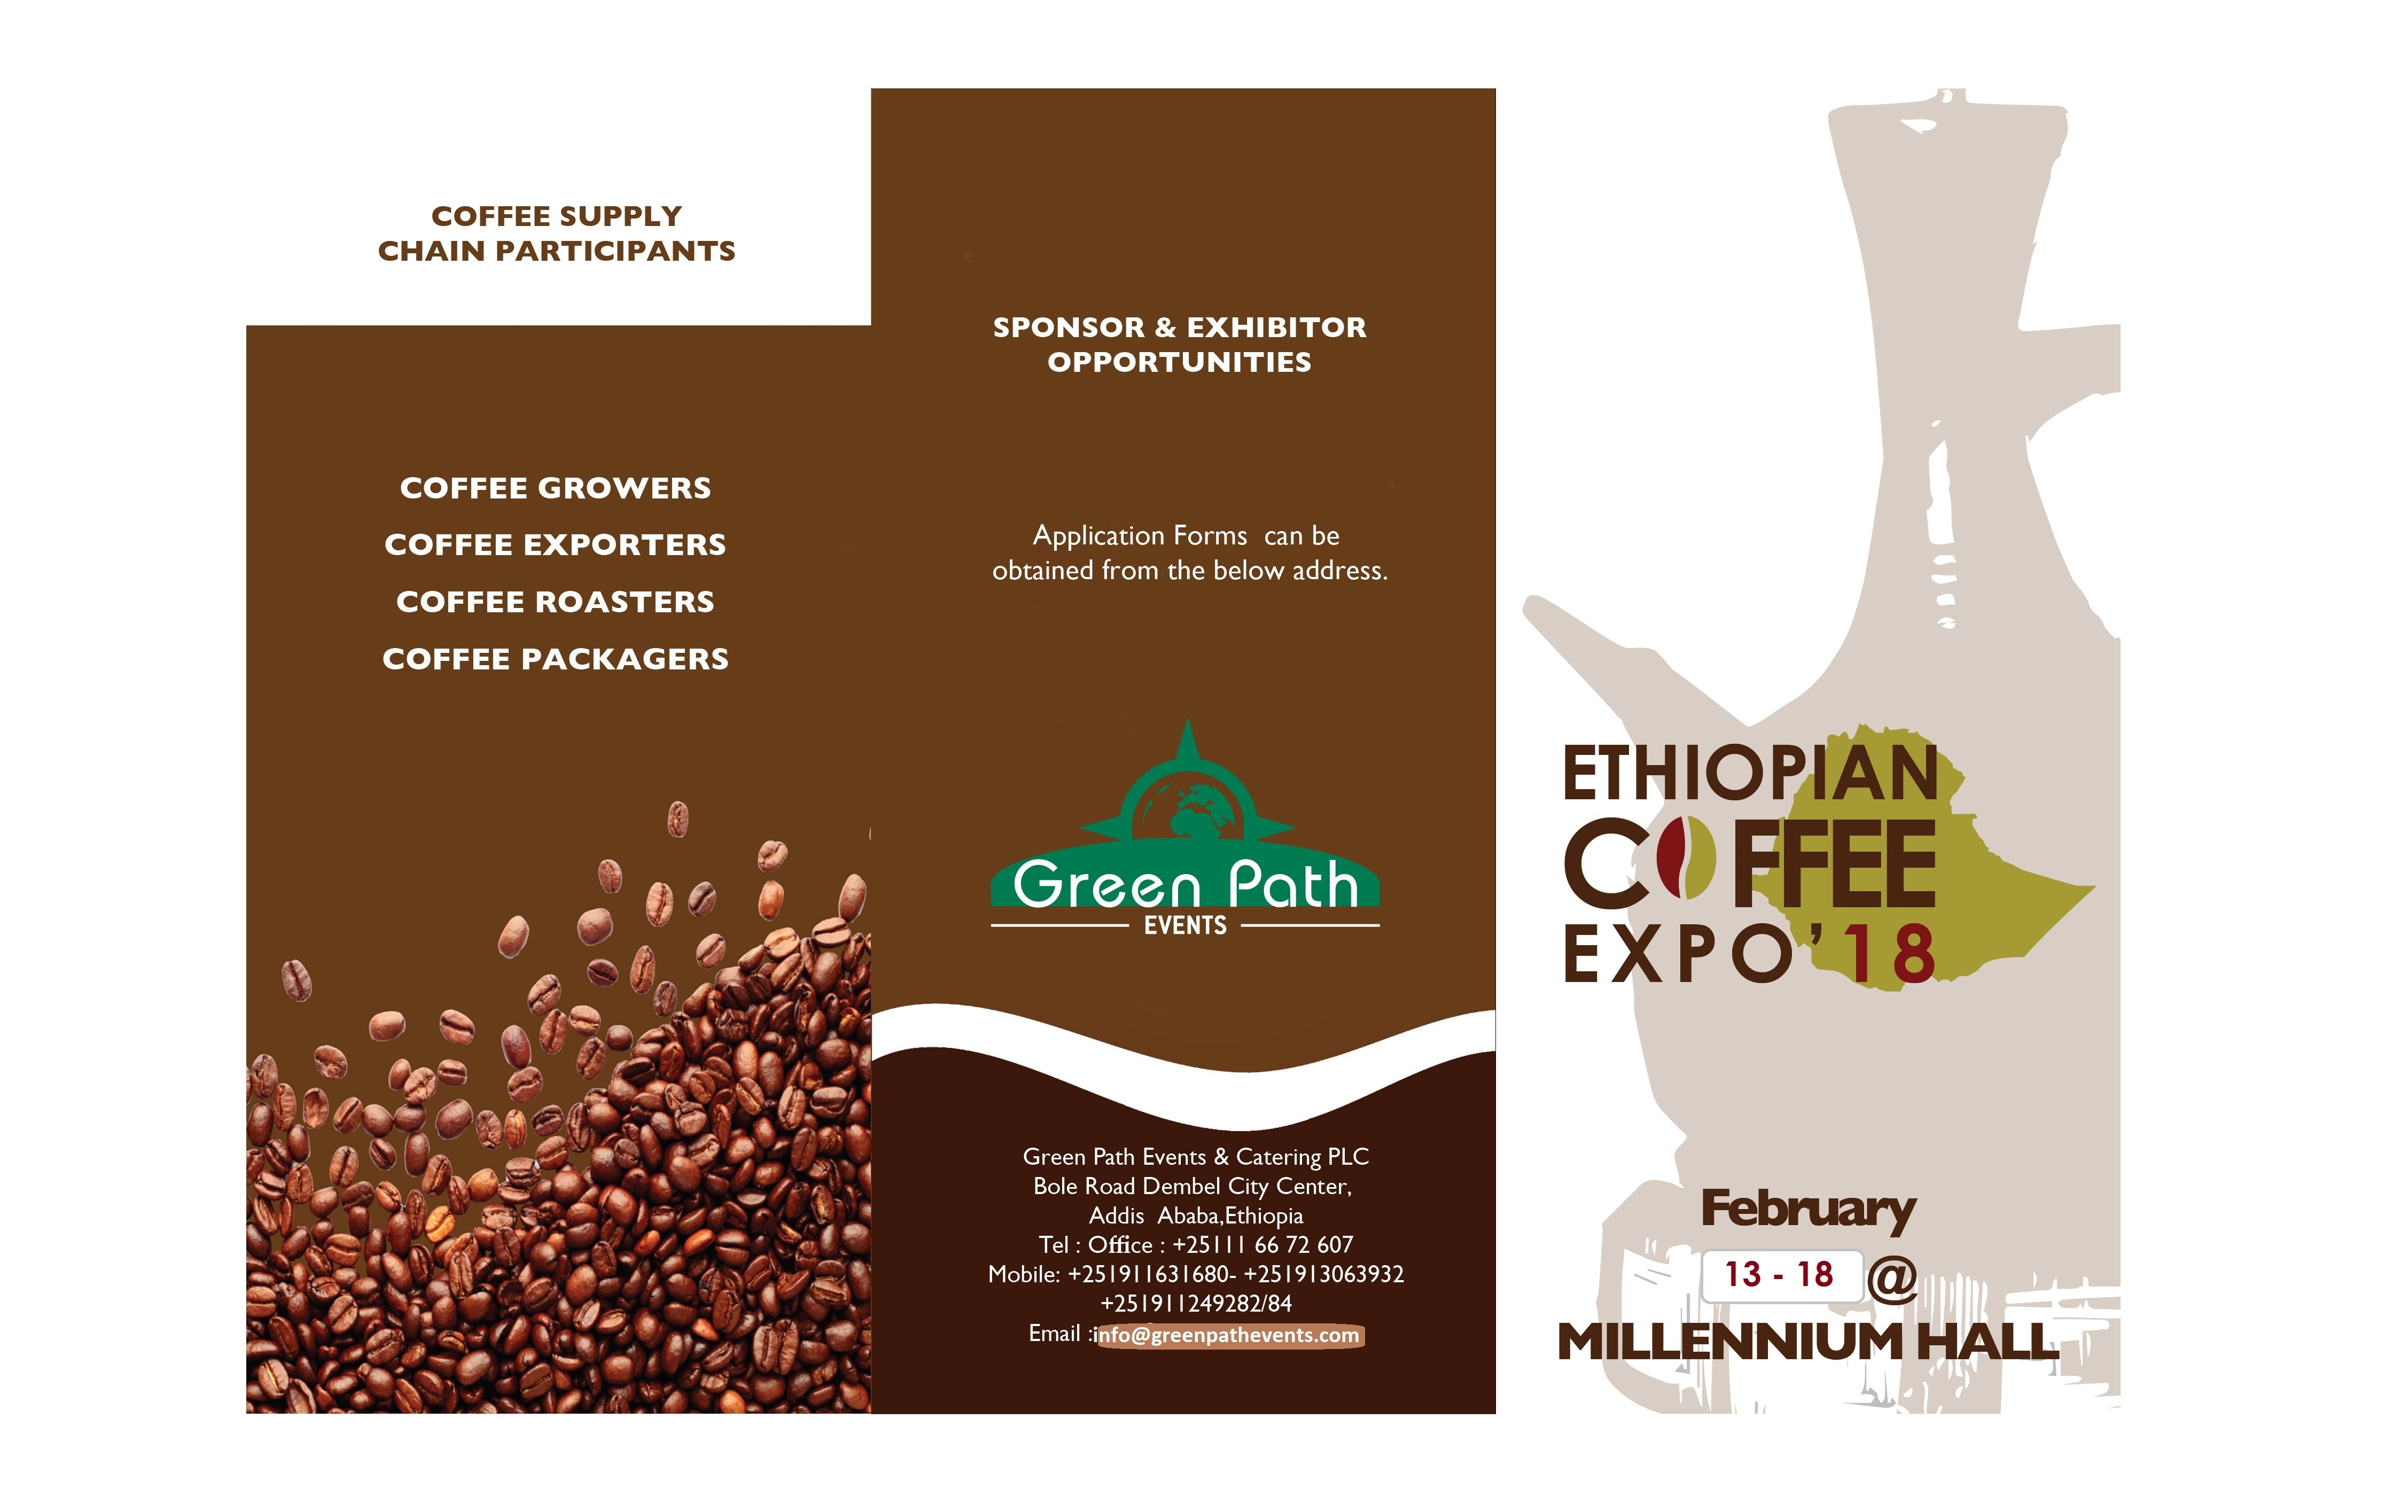 Ethiopian coffee week expo embassy of ethiopia london download falaconquin